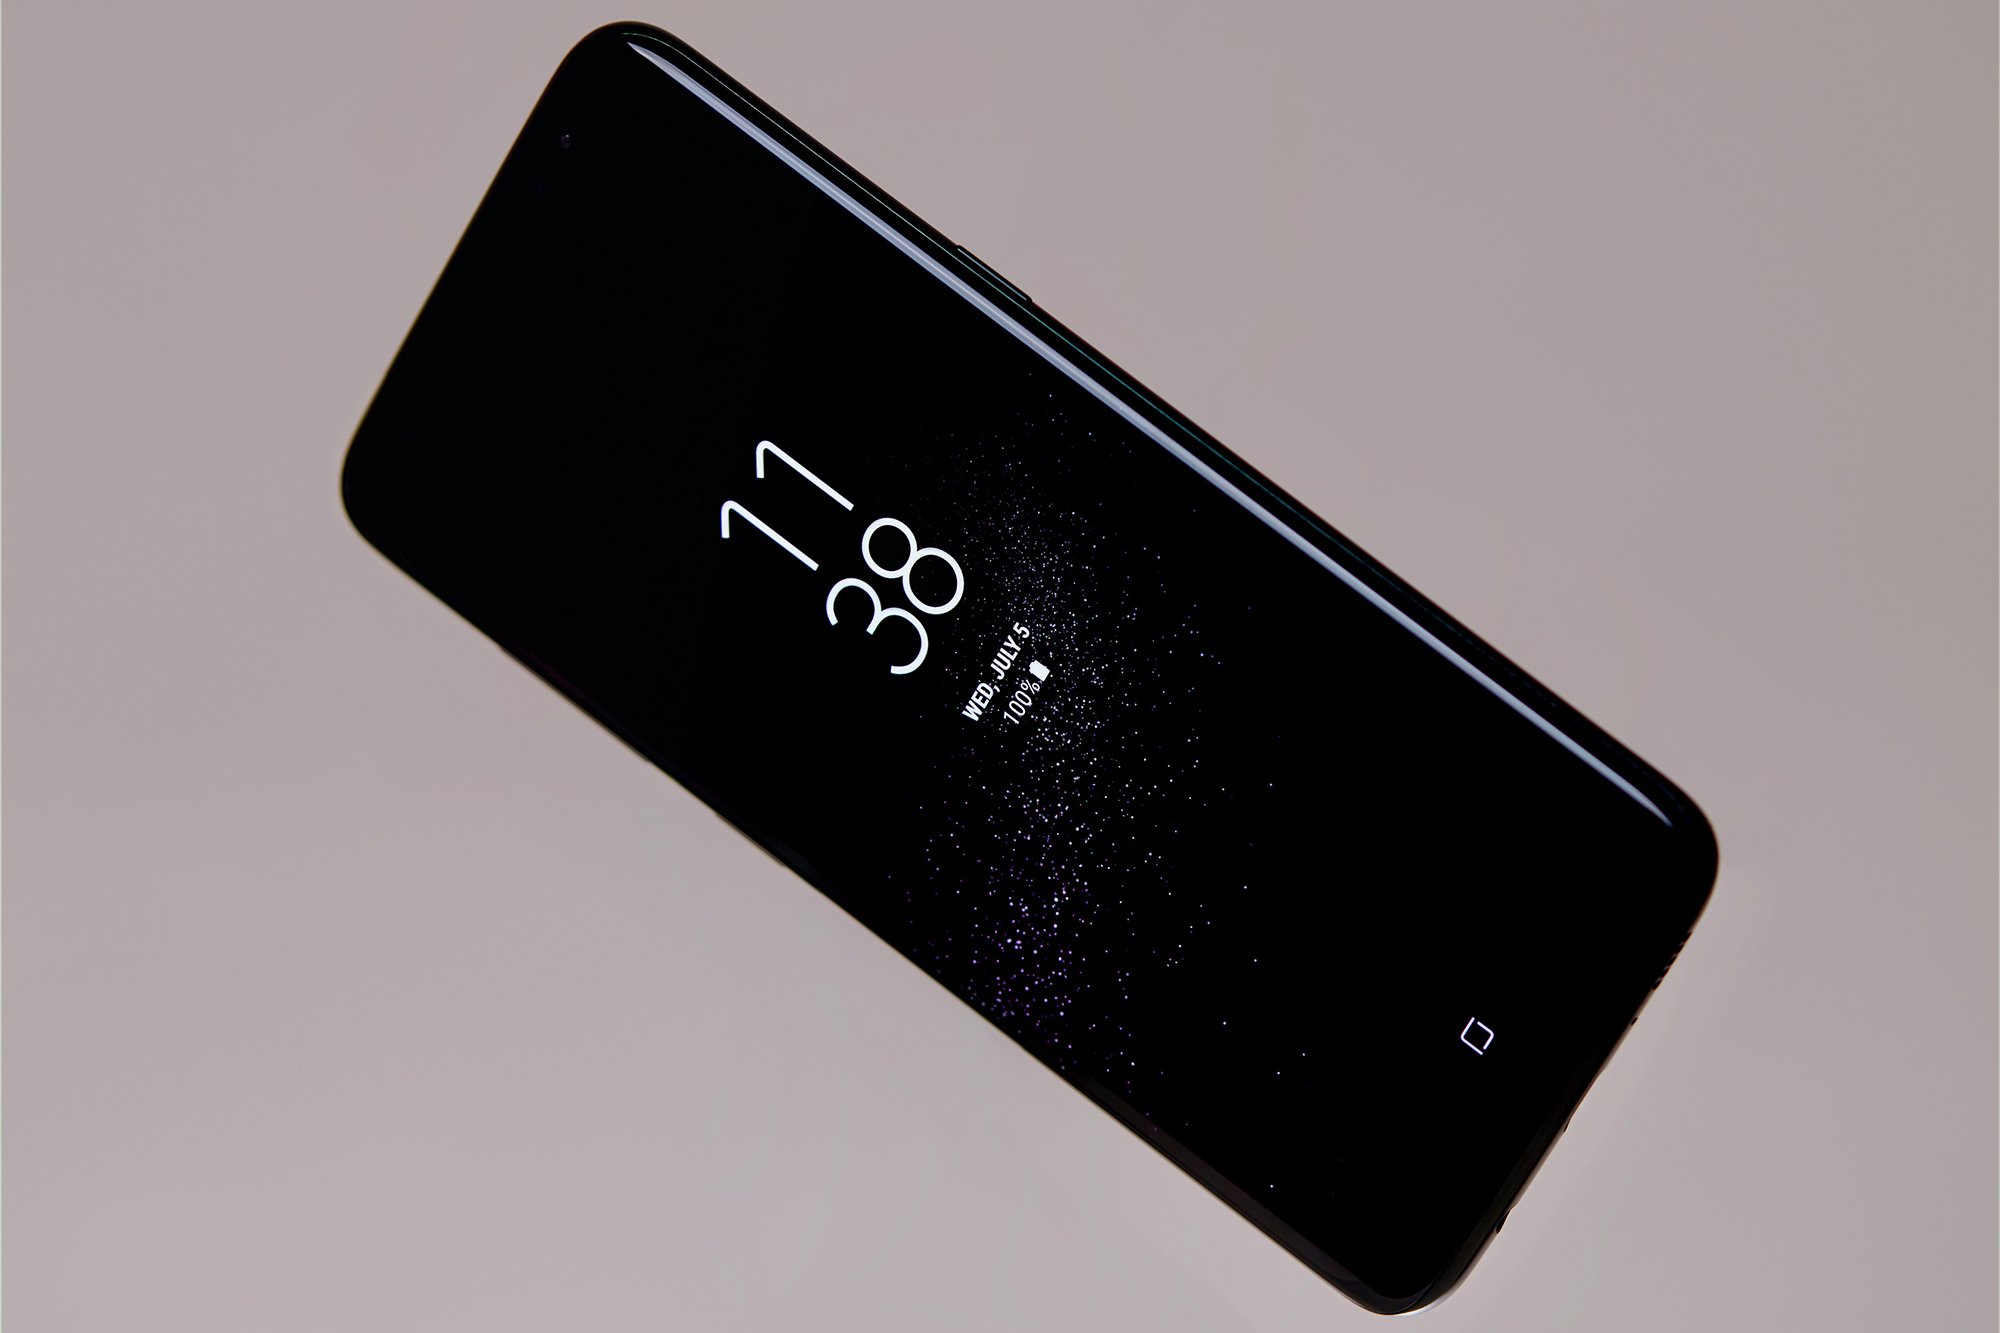 Cover image: Samsung Galaxy S8